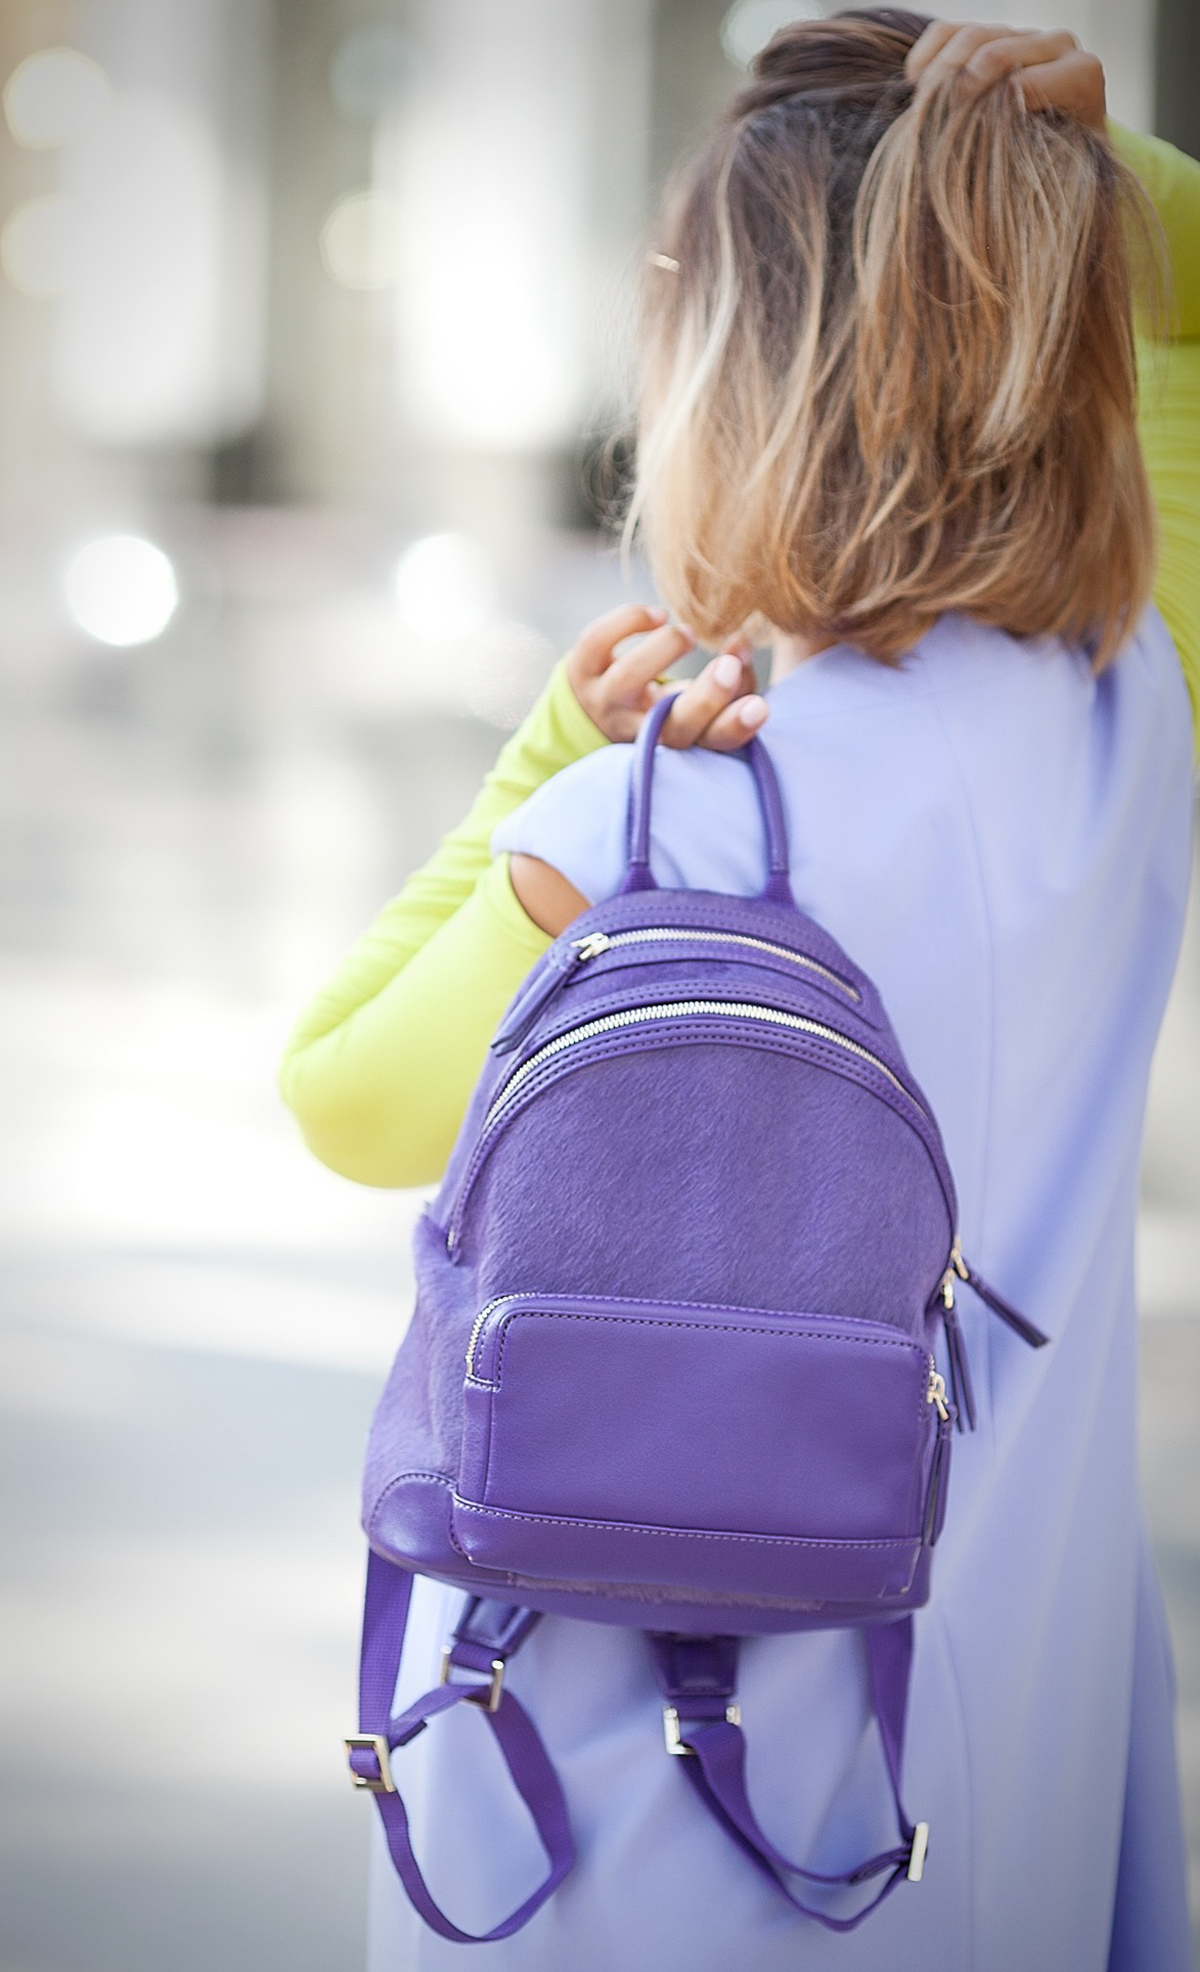 pernelle-alessandro-backpack